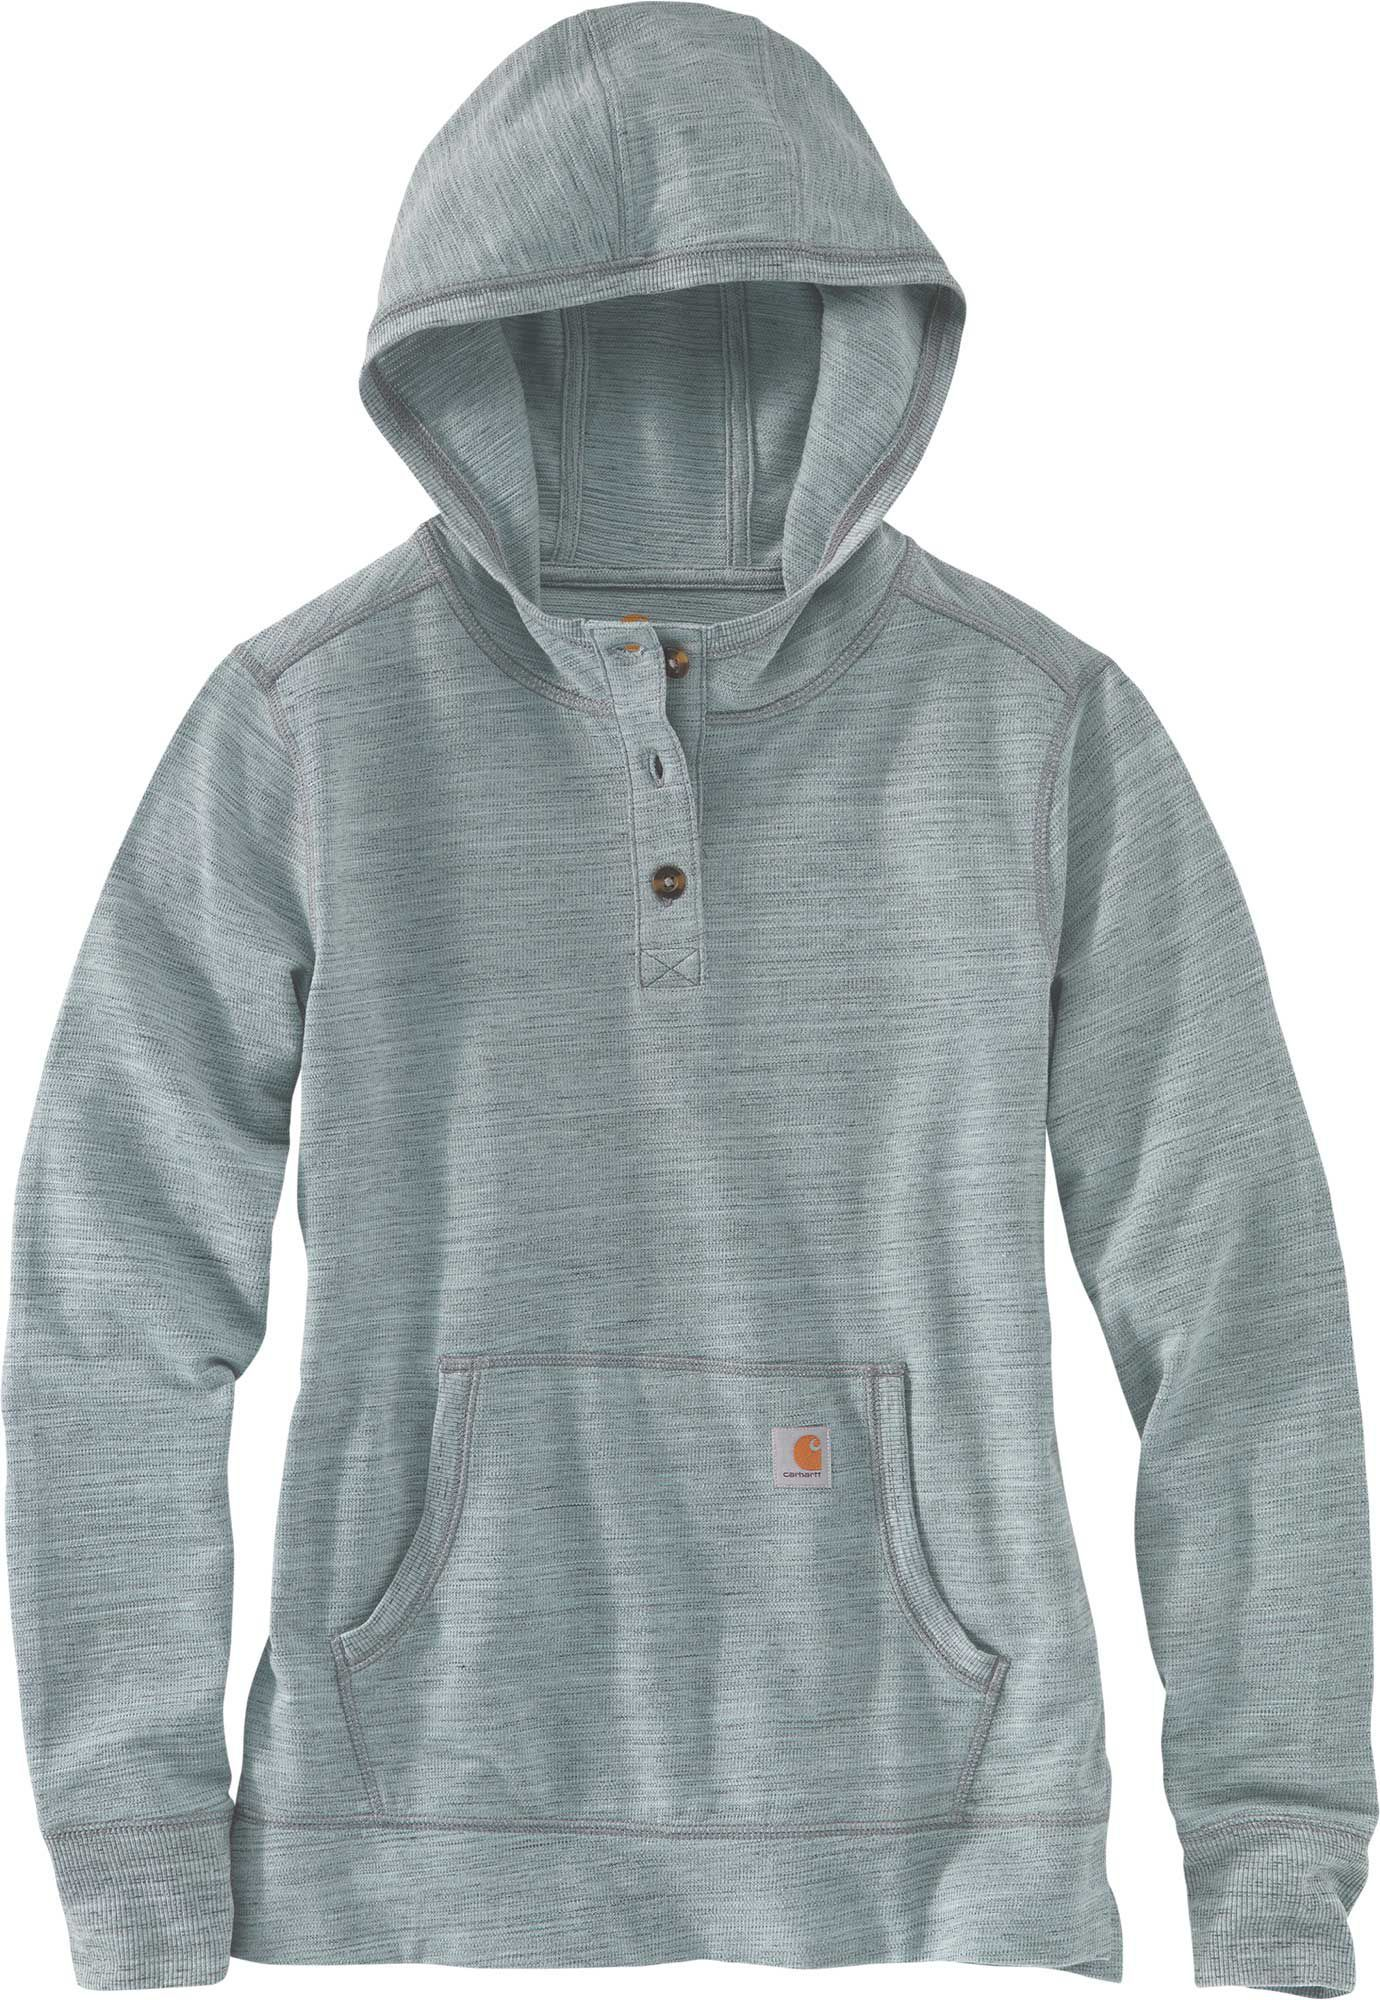 e70c995b Carhartt Women's Norwalk Pullover Hoodie, Size: Large, Gray | Products